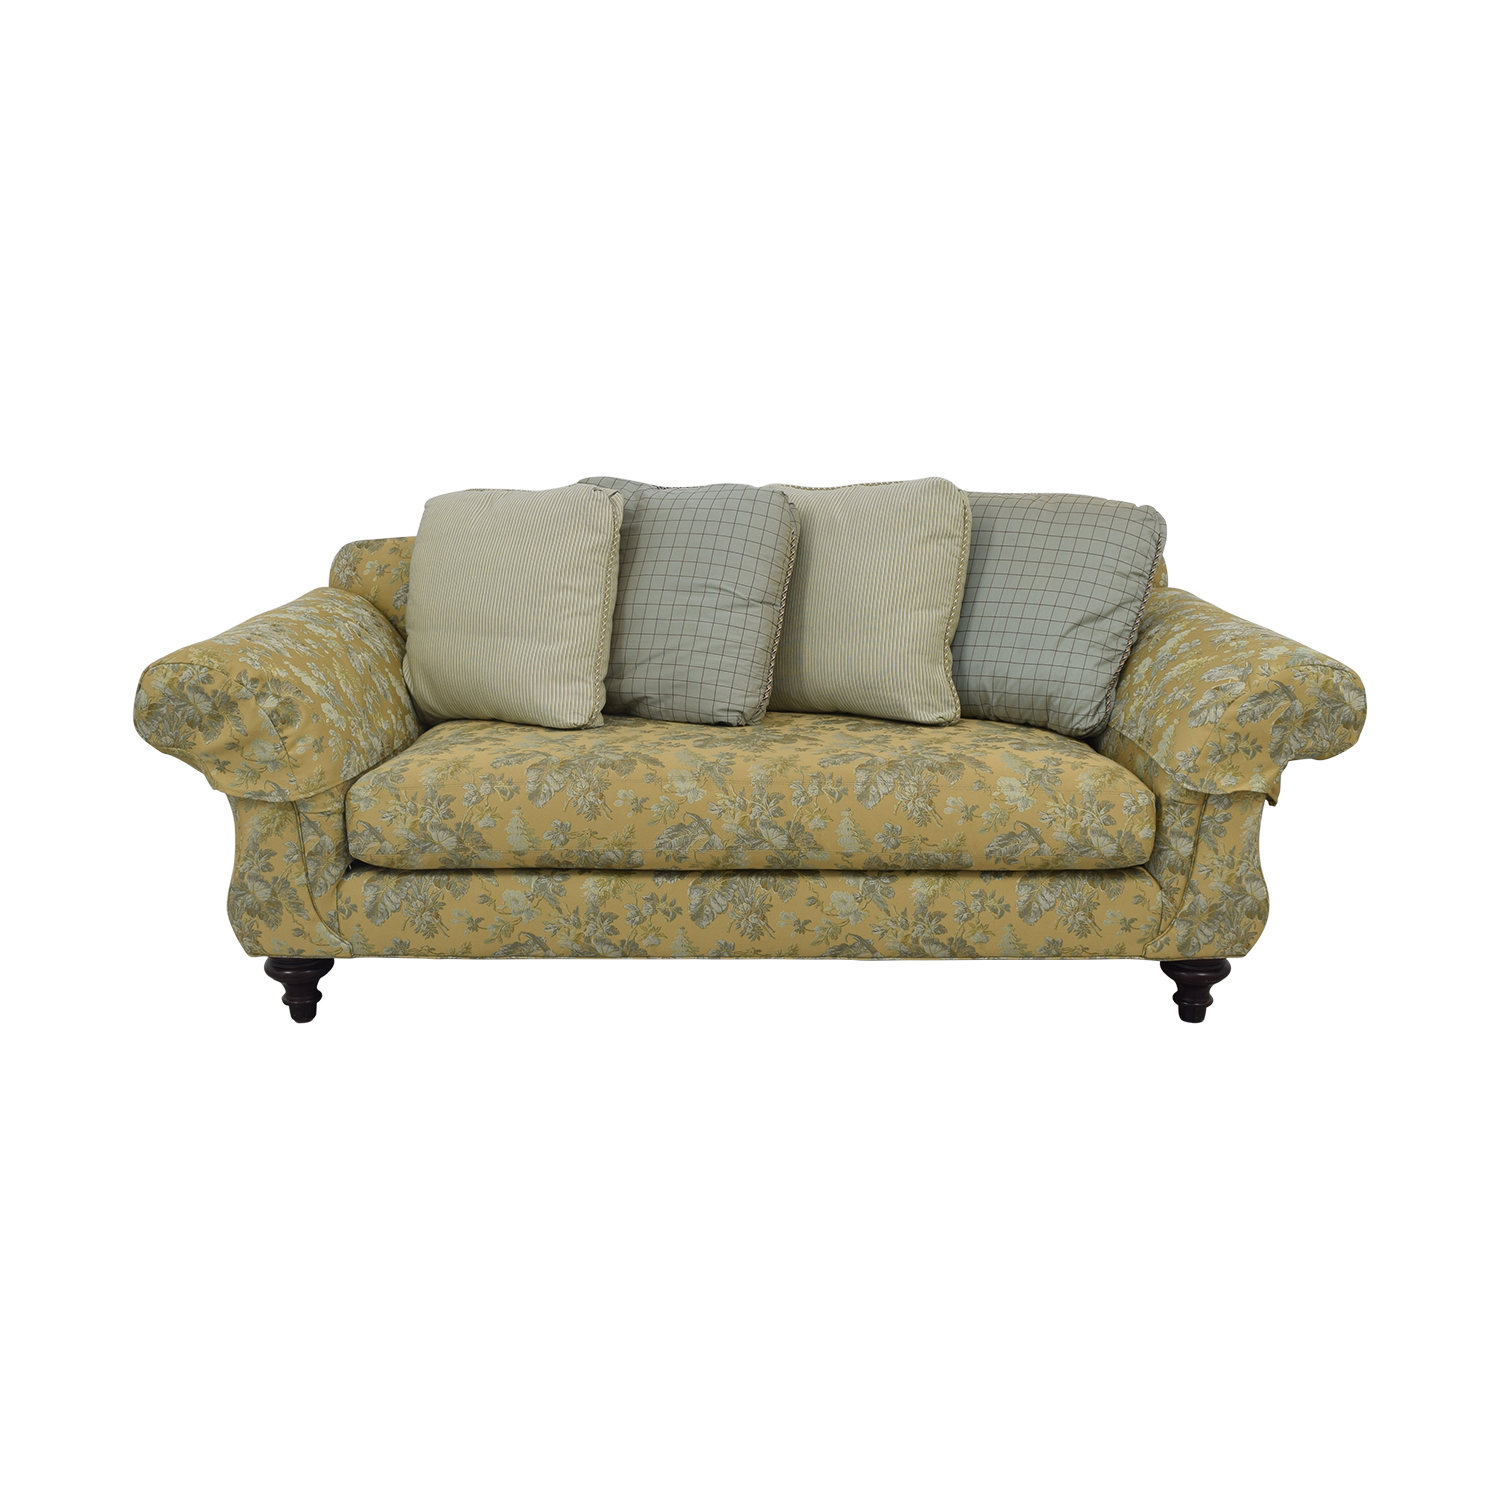 shop Vanguard Furniture Vanguard Furniture Sofa with Down-Filled Pillows online